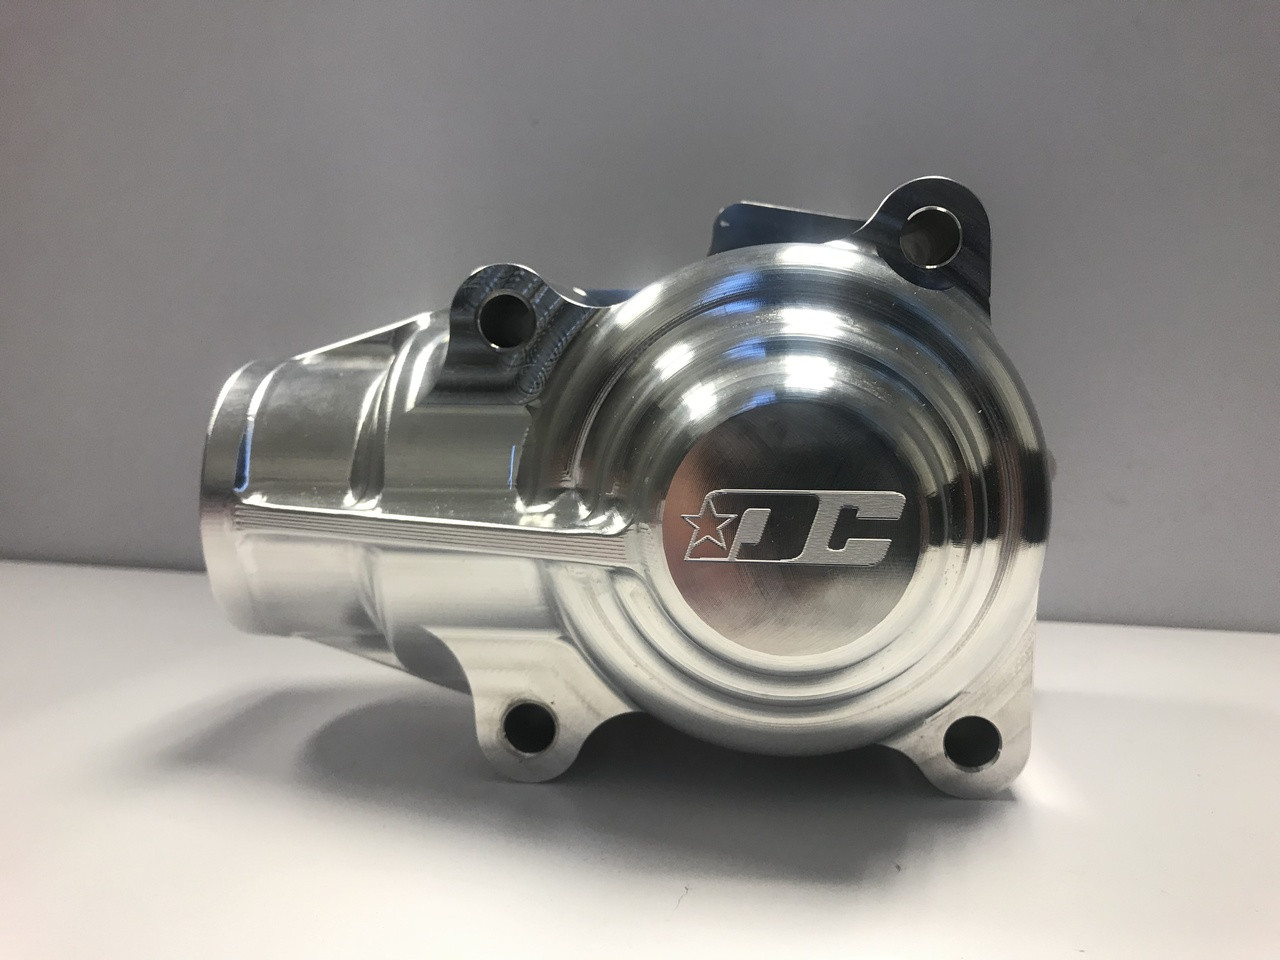 Drag Cartel - Billet K-series Awd Replacement Transfer Case